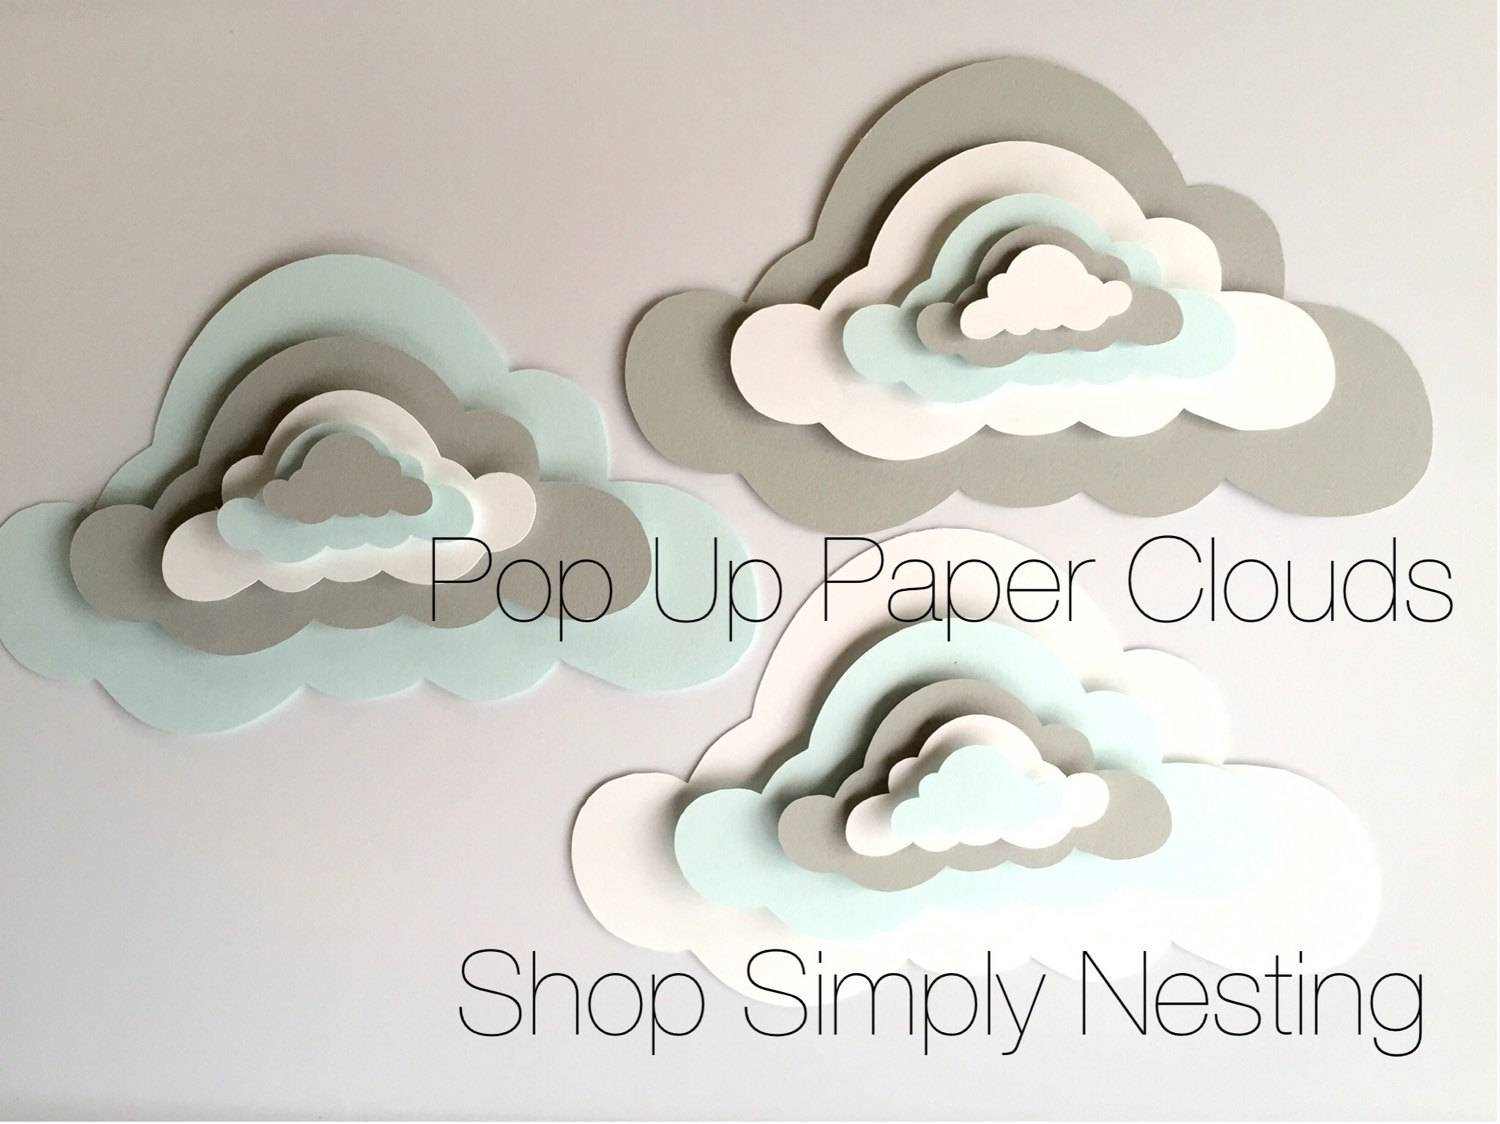 3 Pop Up Paper Clouds Cloud Wall Art 3 3D Paper Clouds With Most Current 3D Clouds Out Of Paper Wall Art (View 12 of 25)